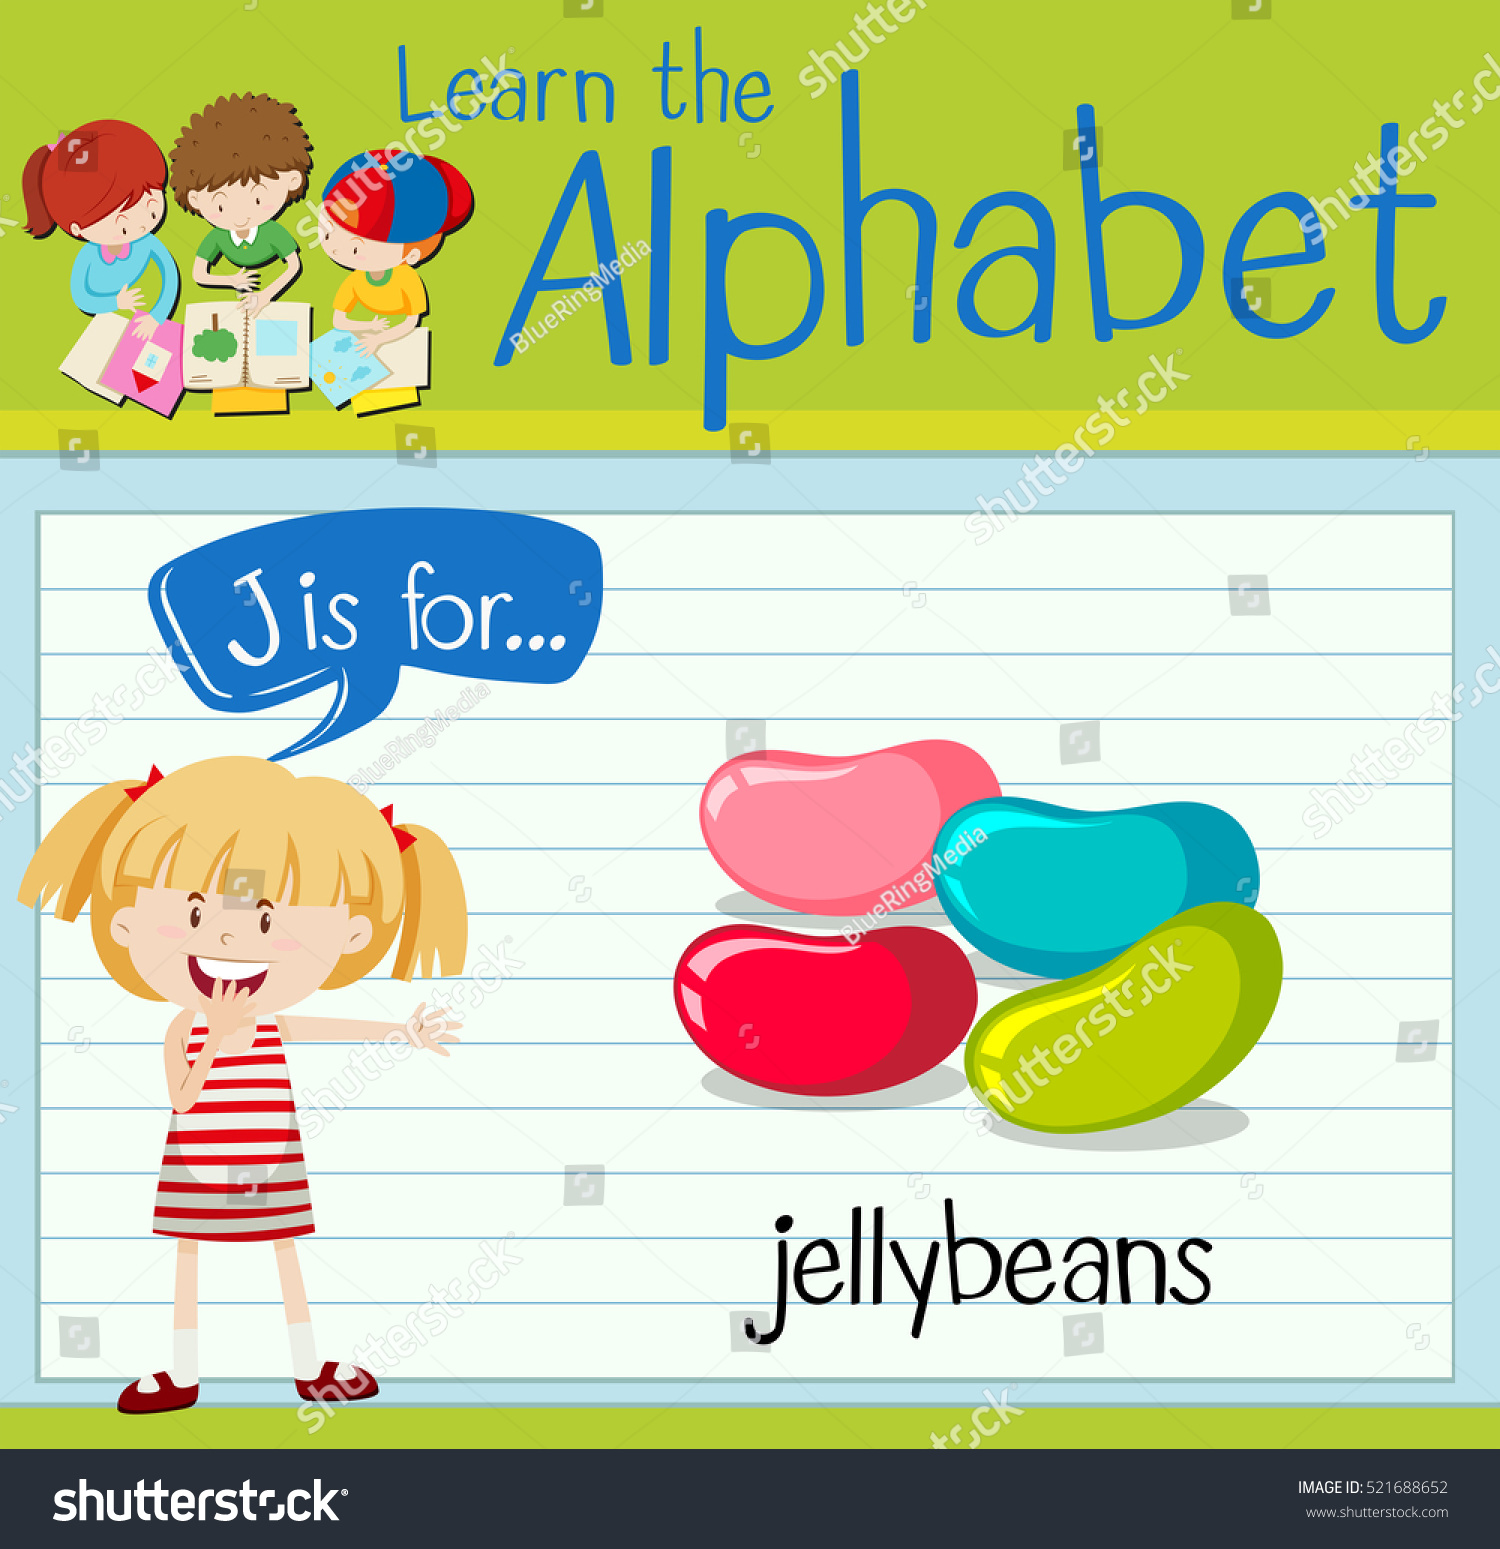 Stock controller cover letter 500 word essay scholarship j is for jellybeans illustration 521688652 top8executiveheadchefresumesamples 150723074459 lva1 app6891 thumbnailhtml stock controller cover letter madrichimfo Choice Image